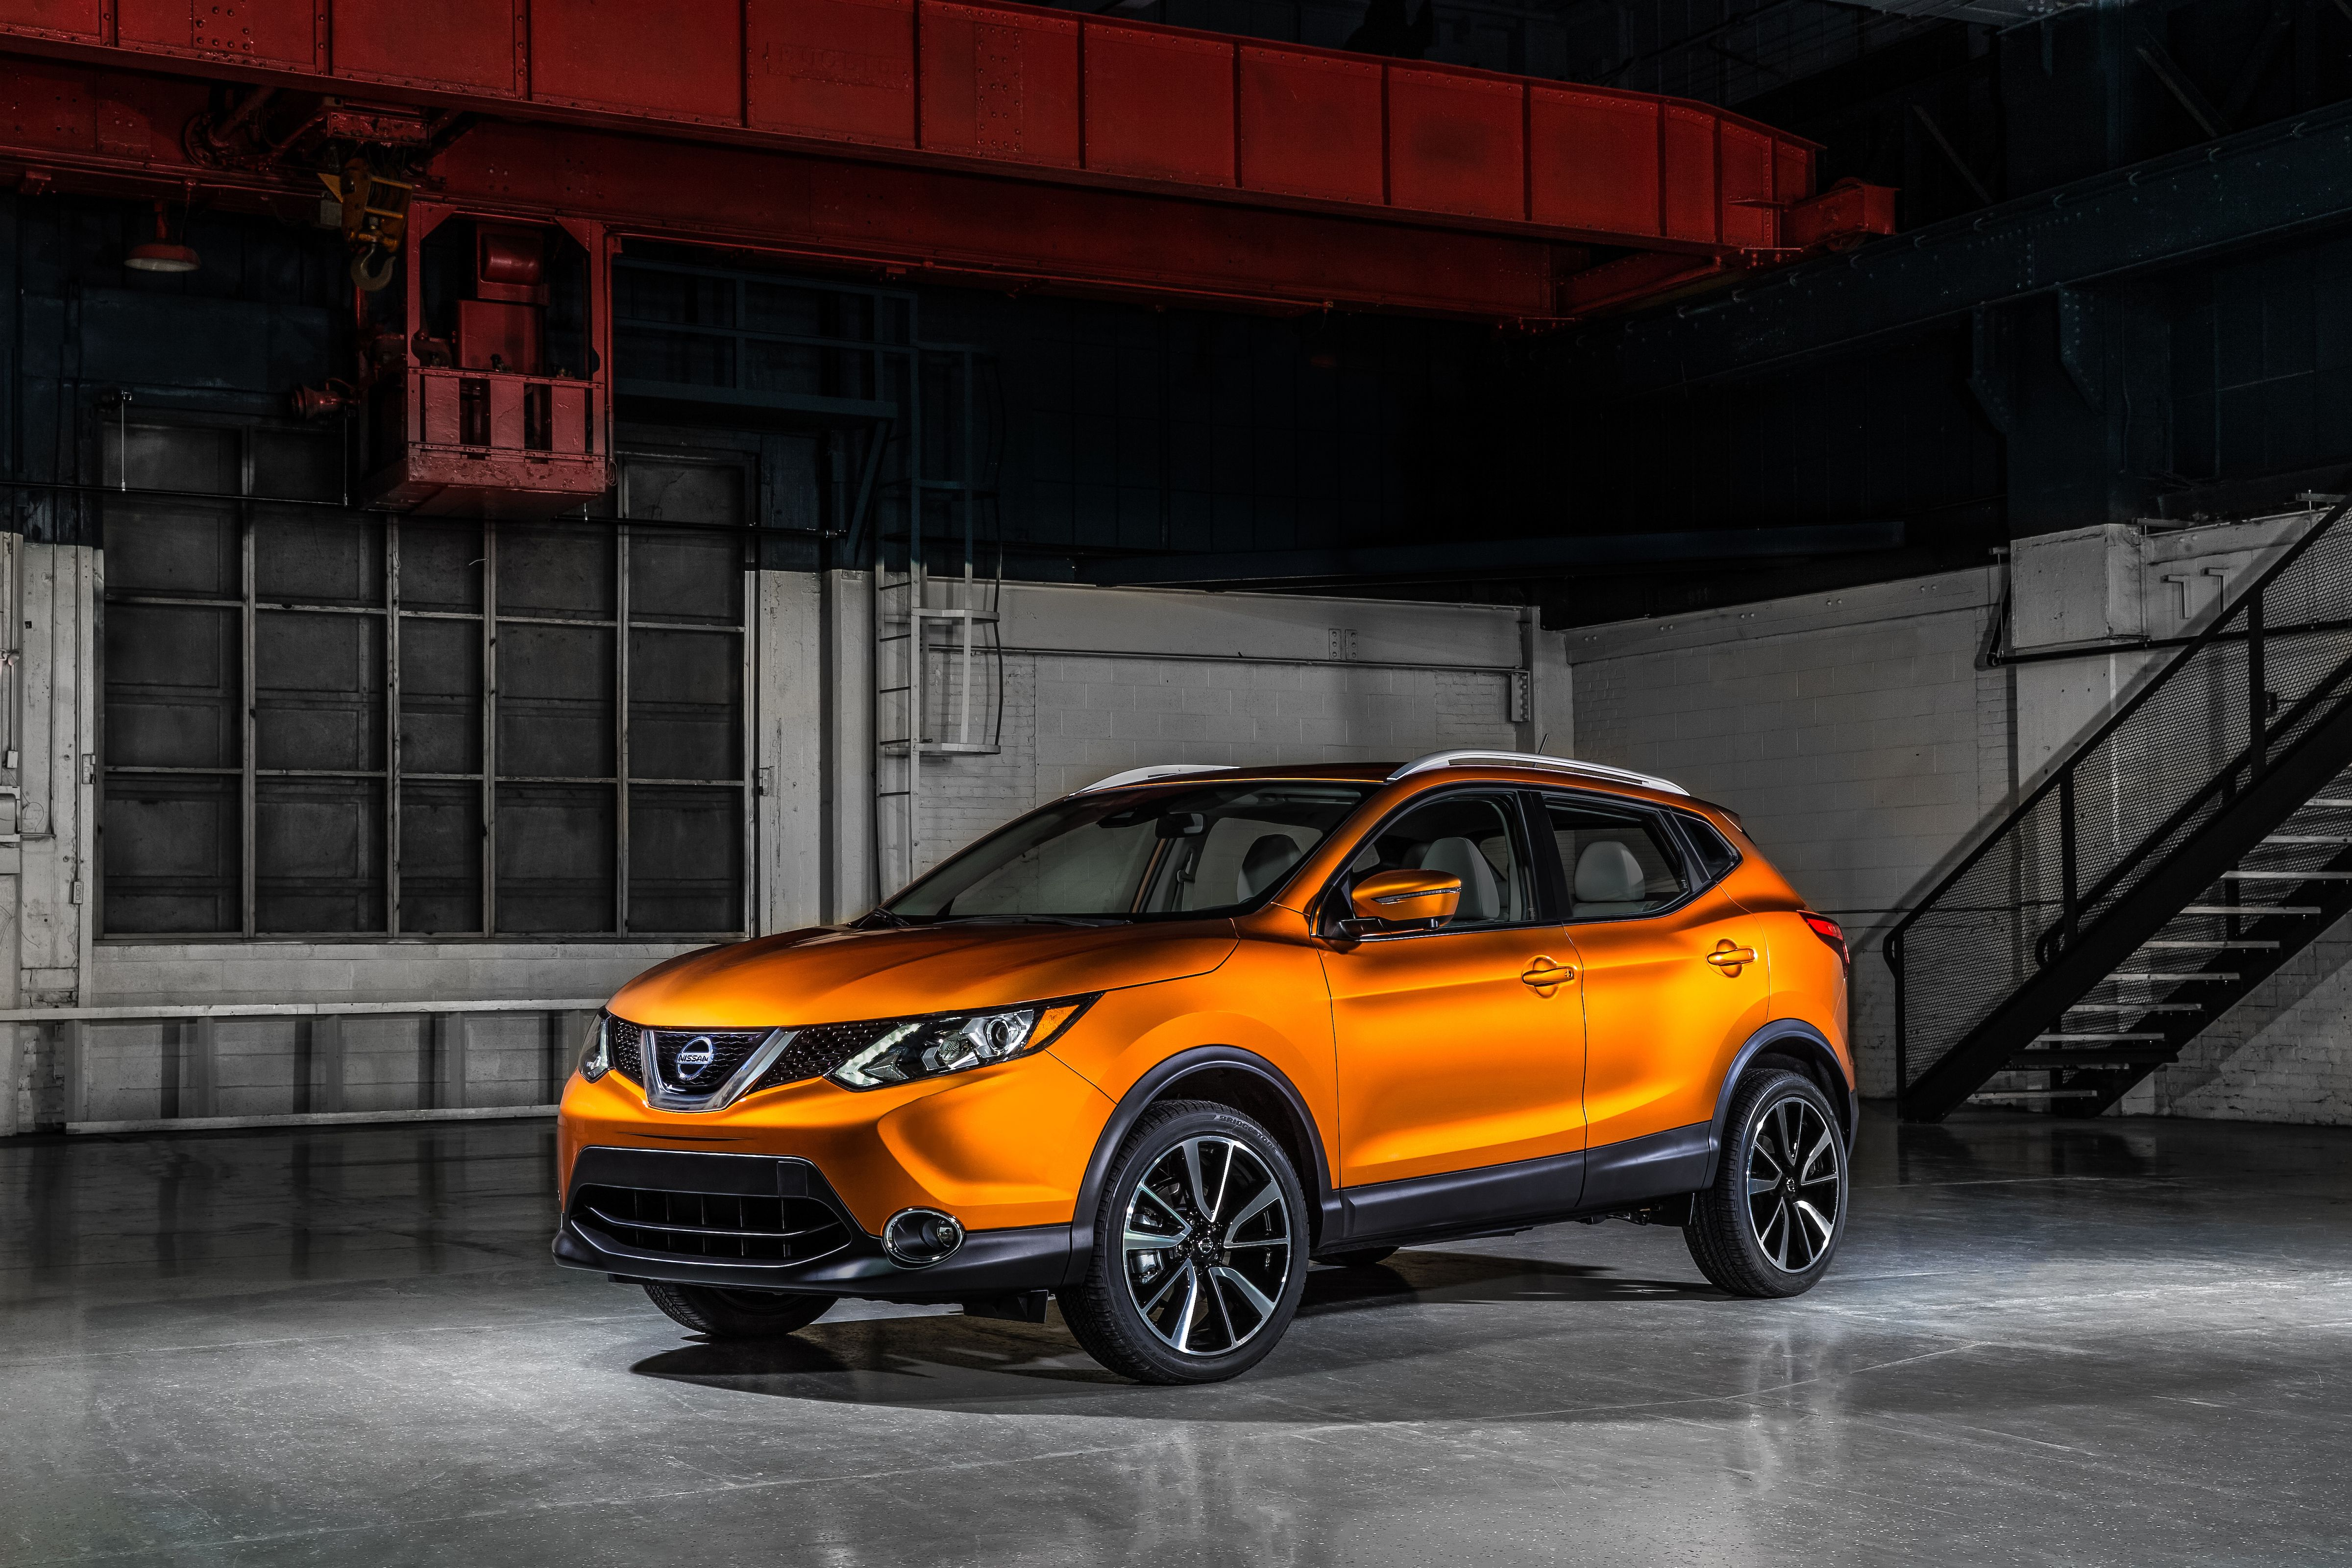 Compact Sporty Affordable Introducing The 2017 Nissan Rogue